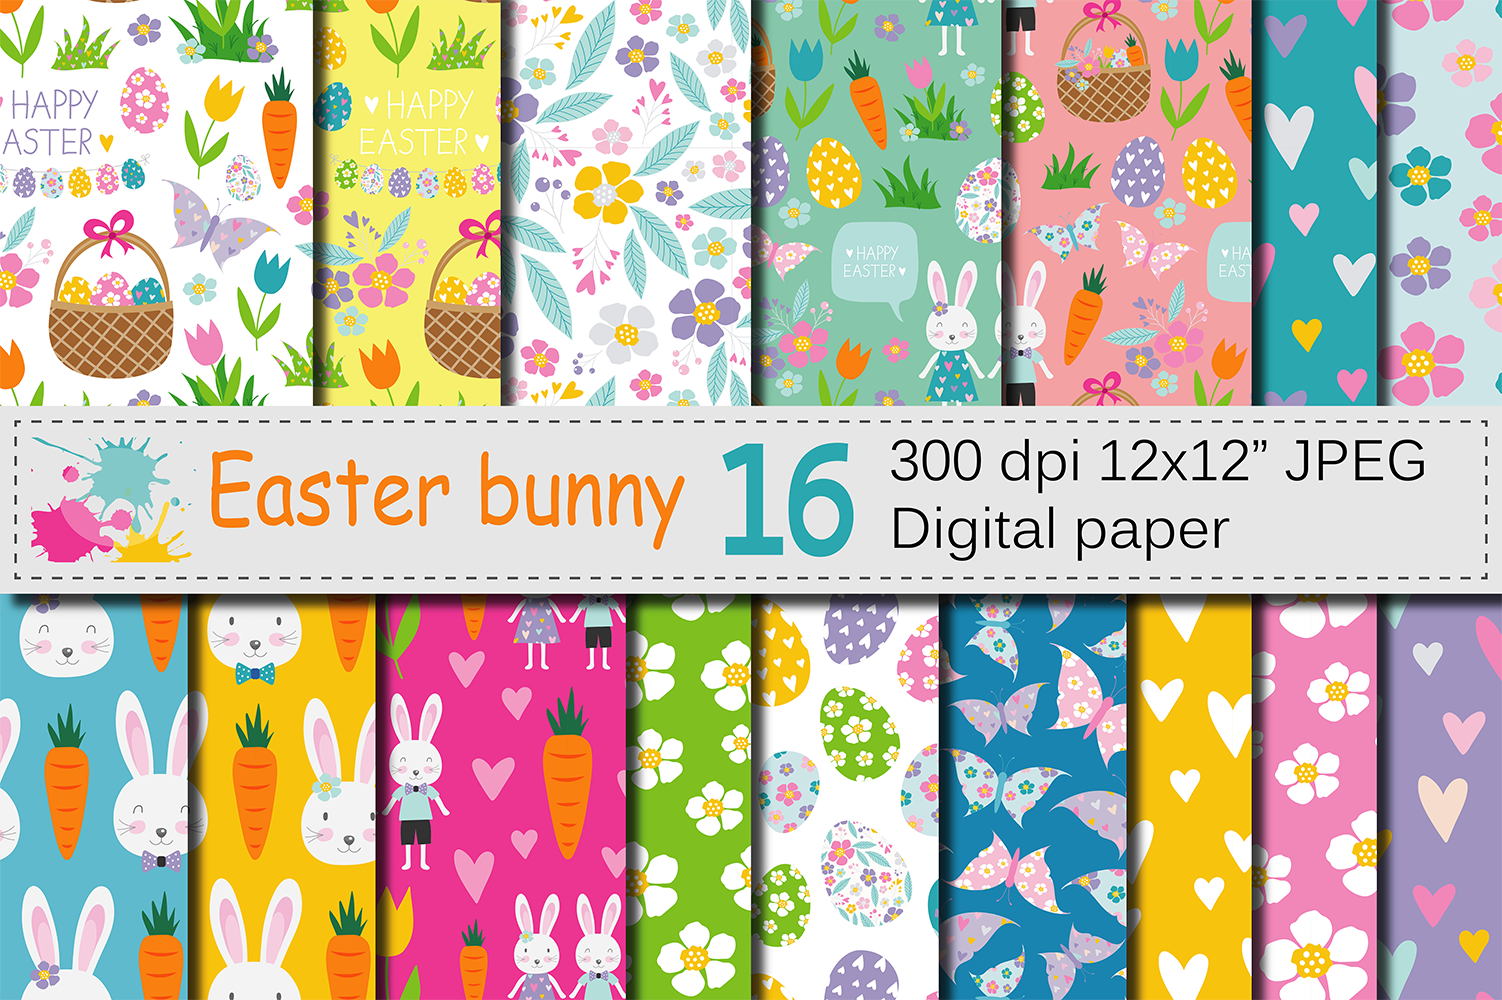 Download Free Easter Bunny Digital Paper Graphic By Vr Digital Design for Cricut Explore, Silhouette and other cutting machines.